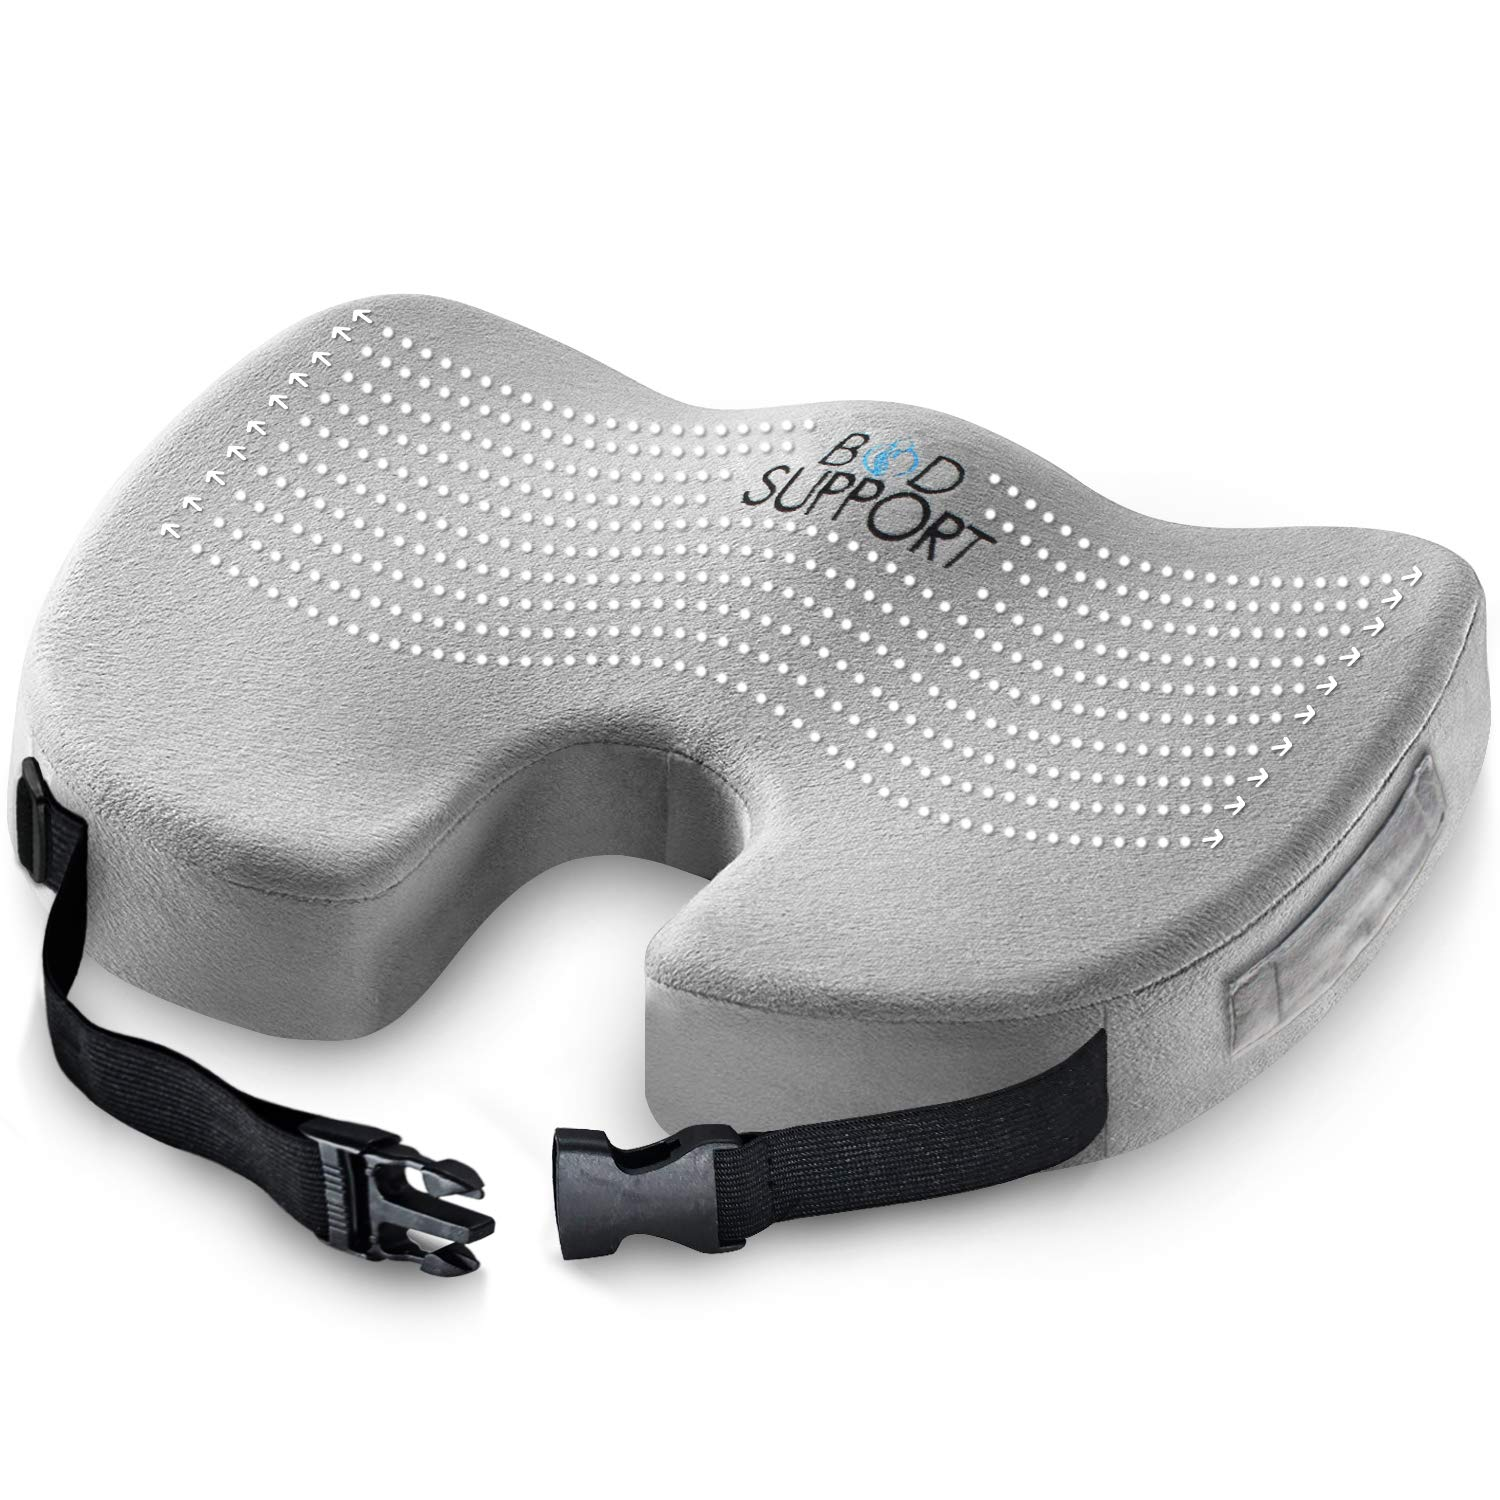 Seat Cushion Memory Foam - With Orthopedic Design To Relieve Coccyx, Sciatica And Tailbone Pain From Prolonged Sitting In The Car, Office Or Kitchen Chairs by Bod Support